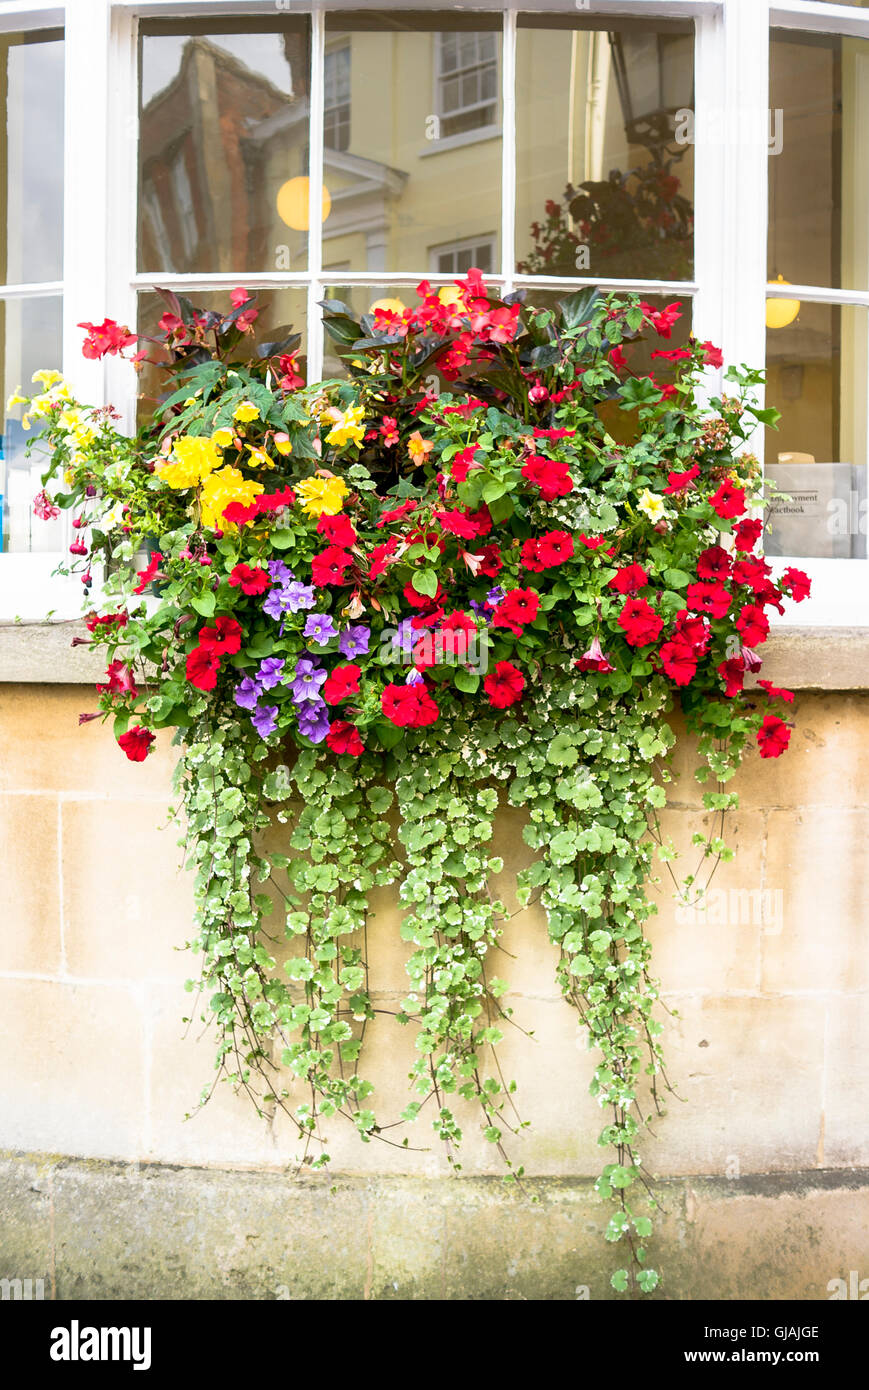 Colorful window box of flowers on a west bay window in a town - Stock Image